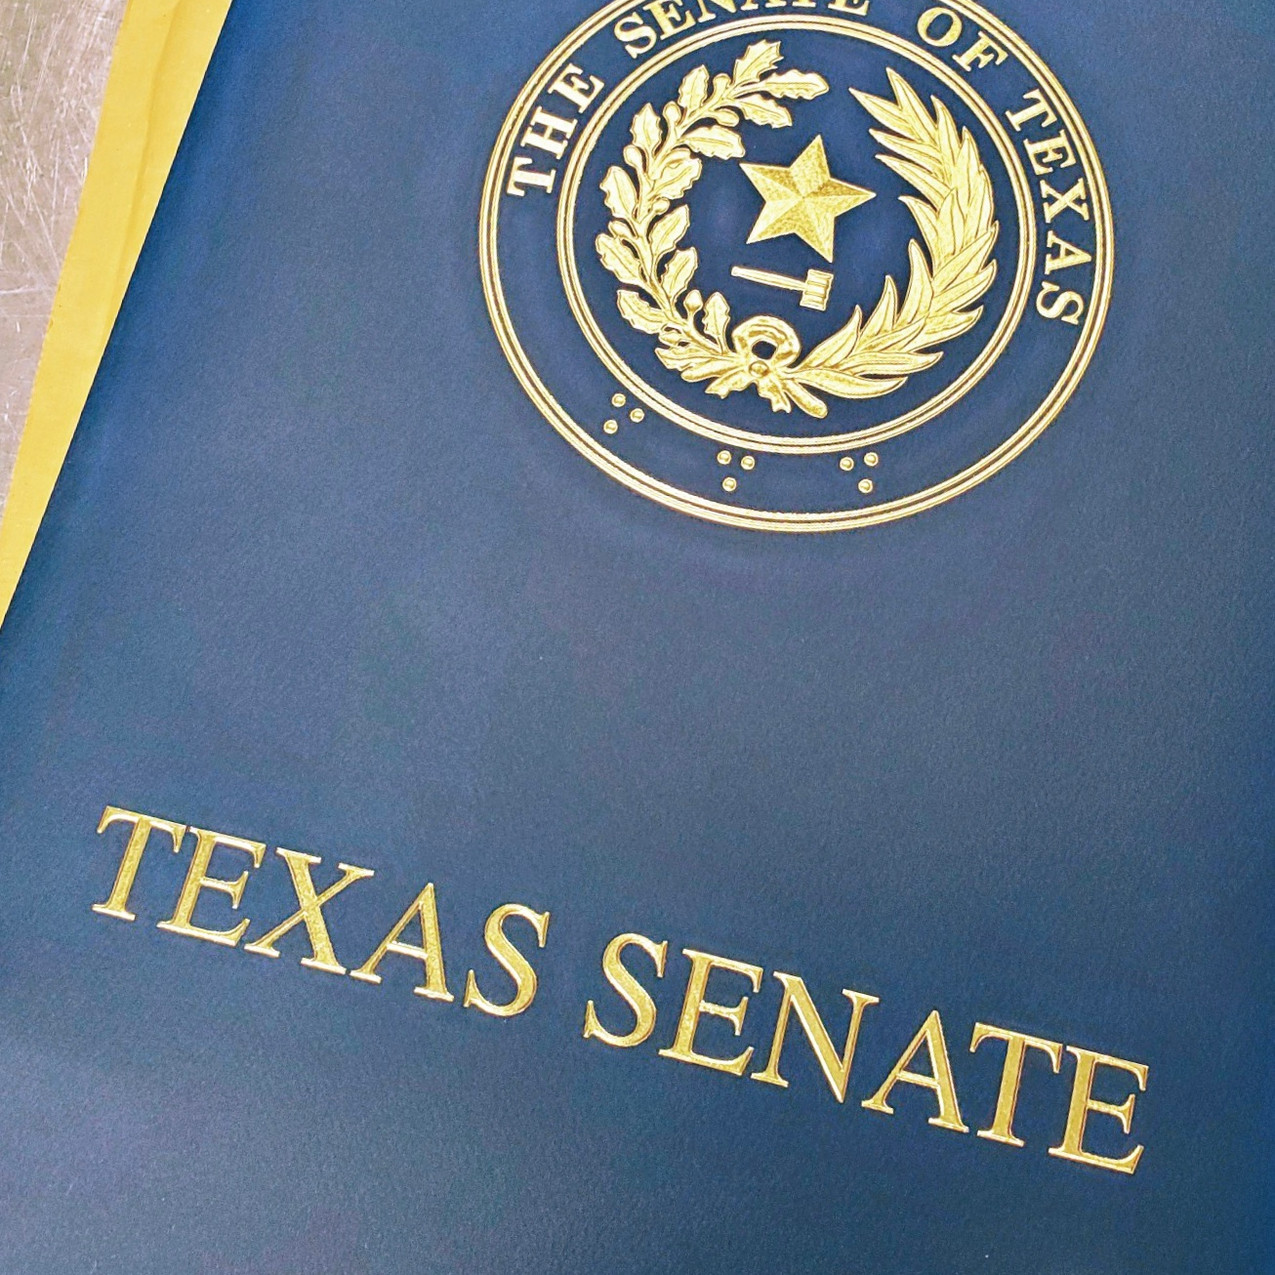 """Lovage short film """"There's Something In The Water"""" received recognition from the Texas Senate commedning the filmmaking team."""